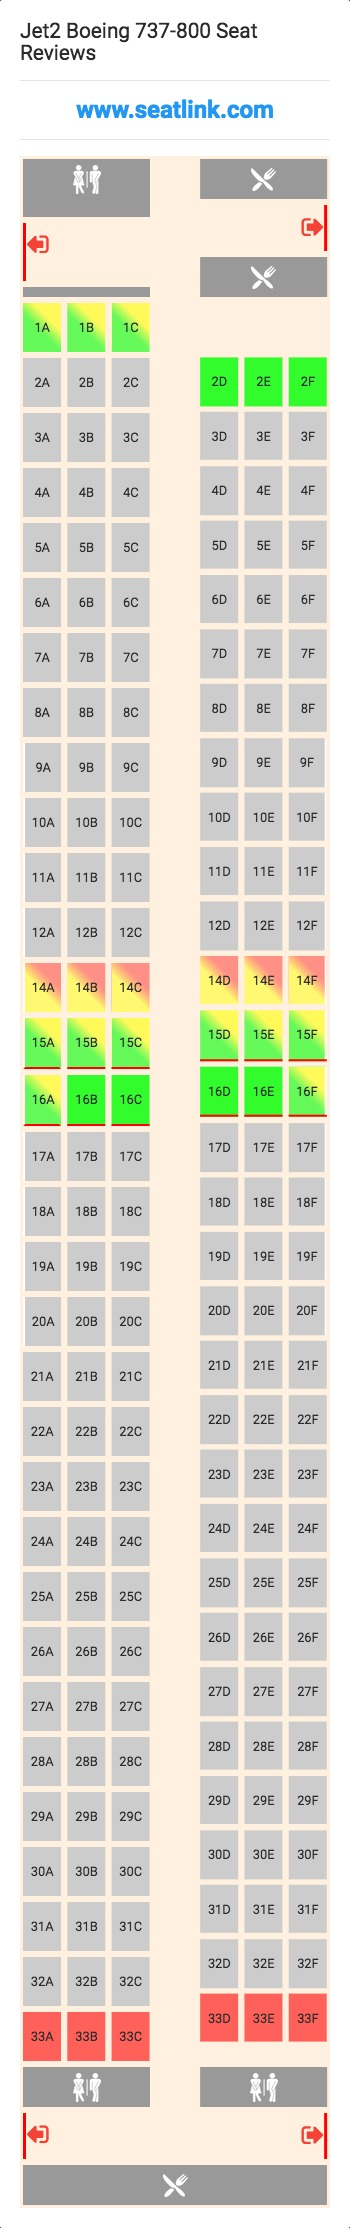 Jet2 Boeing 737-800 Seating Chart - Updated September 2019